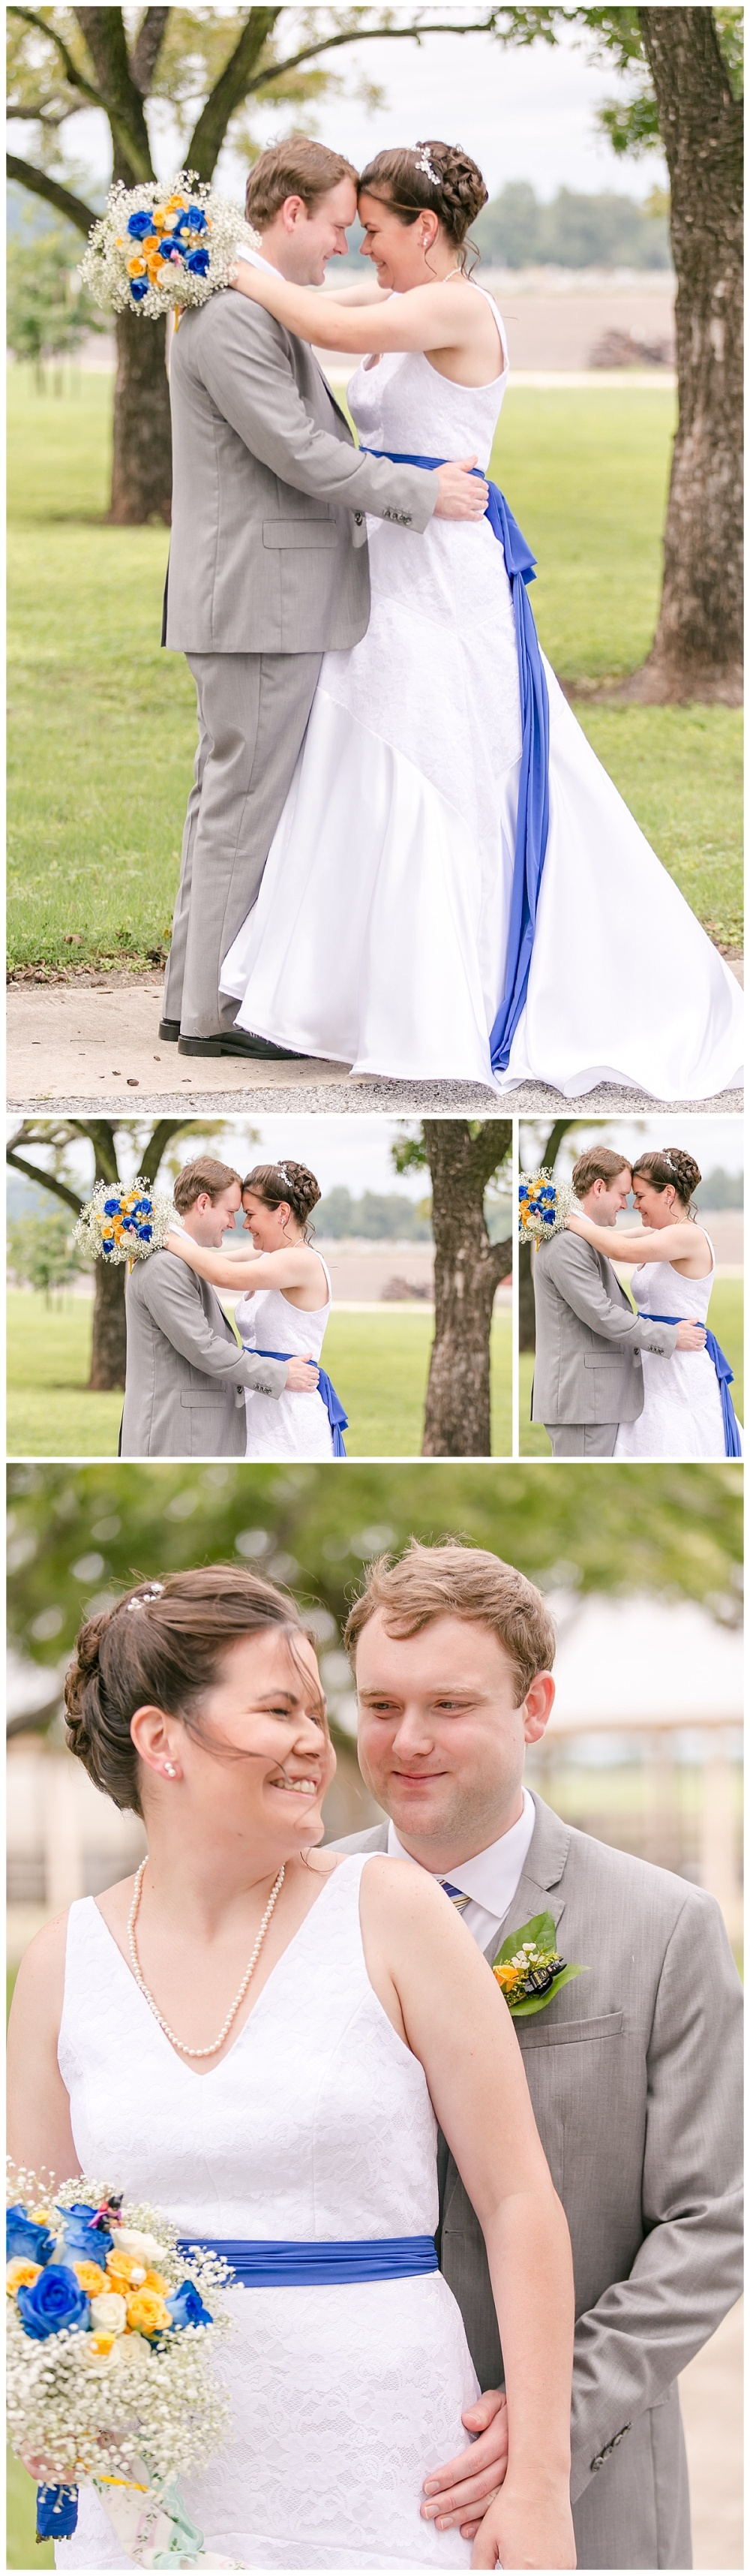 Texas-Wedding-Photographer-La-Coste-Our-Lady-Of-Grace-Church-Bride-Groom-Lego-Theme-Carly-Barton-Photography_0027.jpg